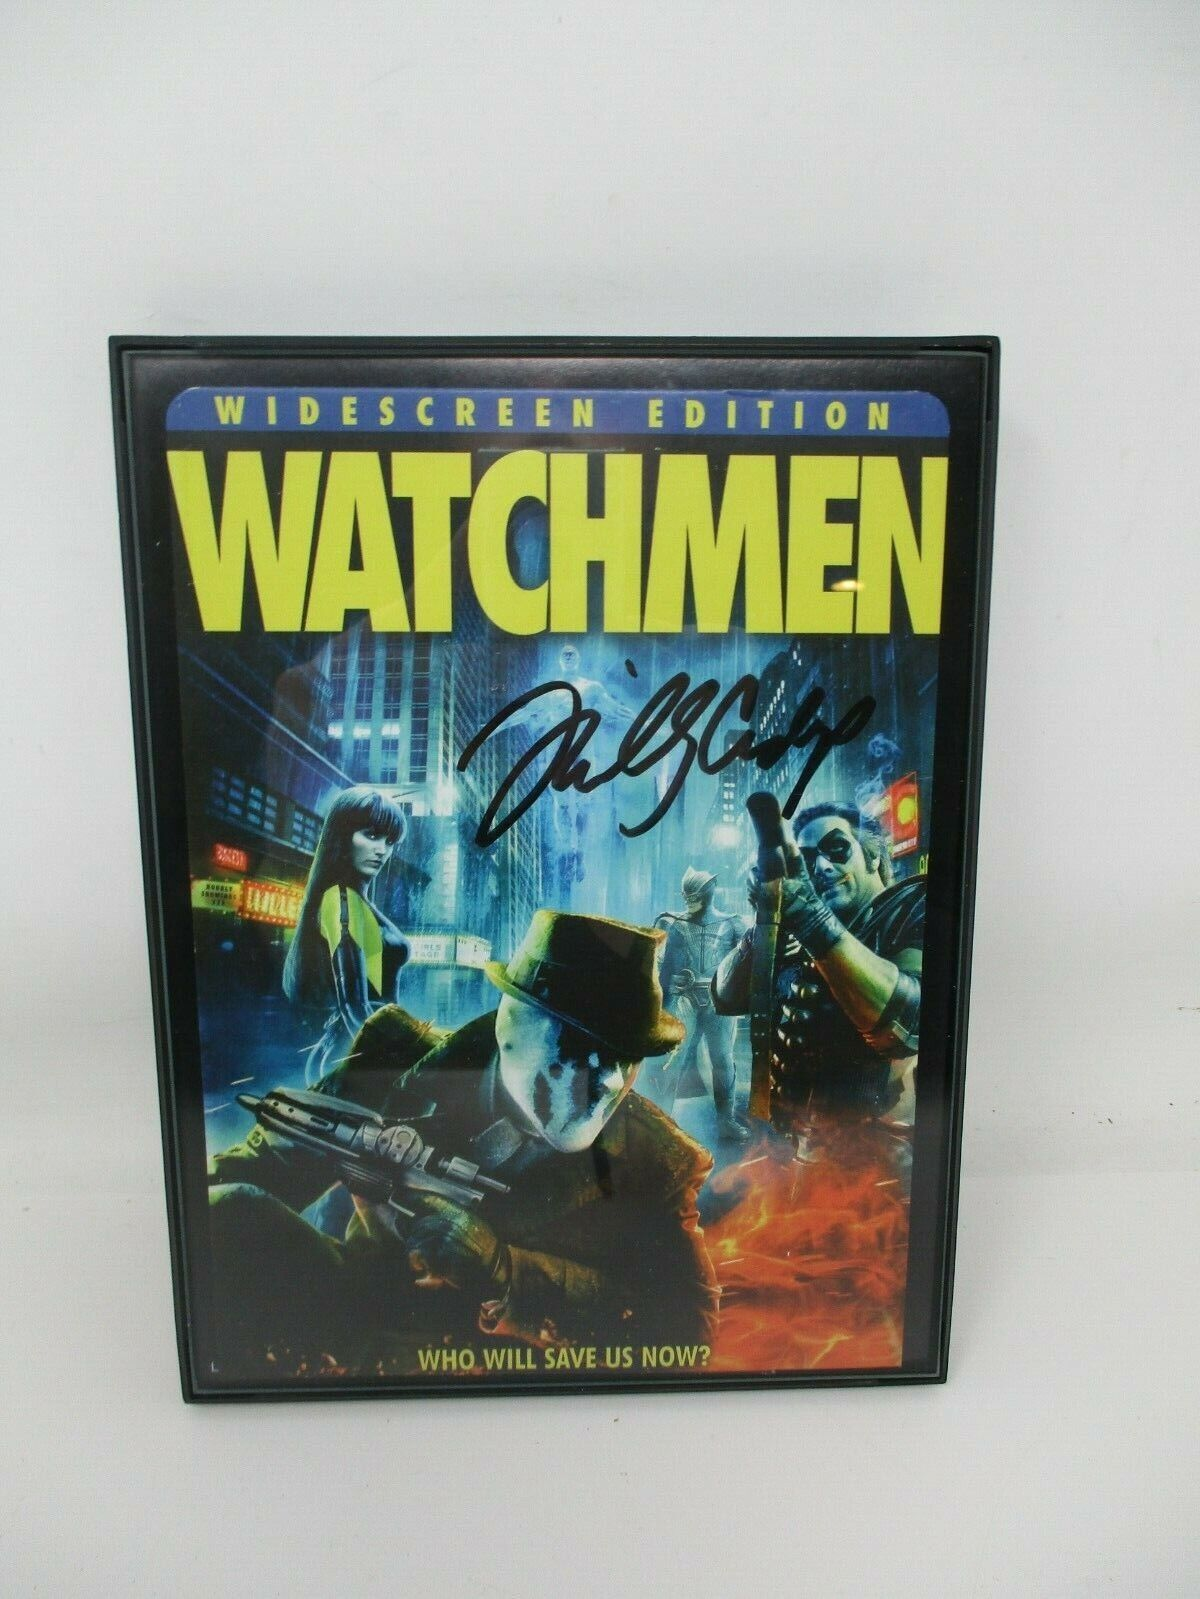 Signed Watchmen Picture